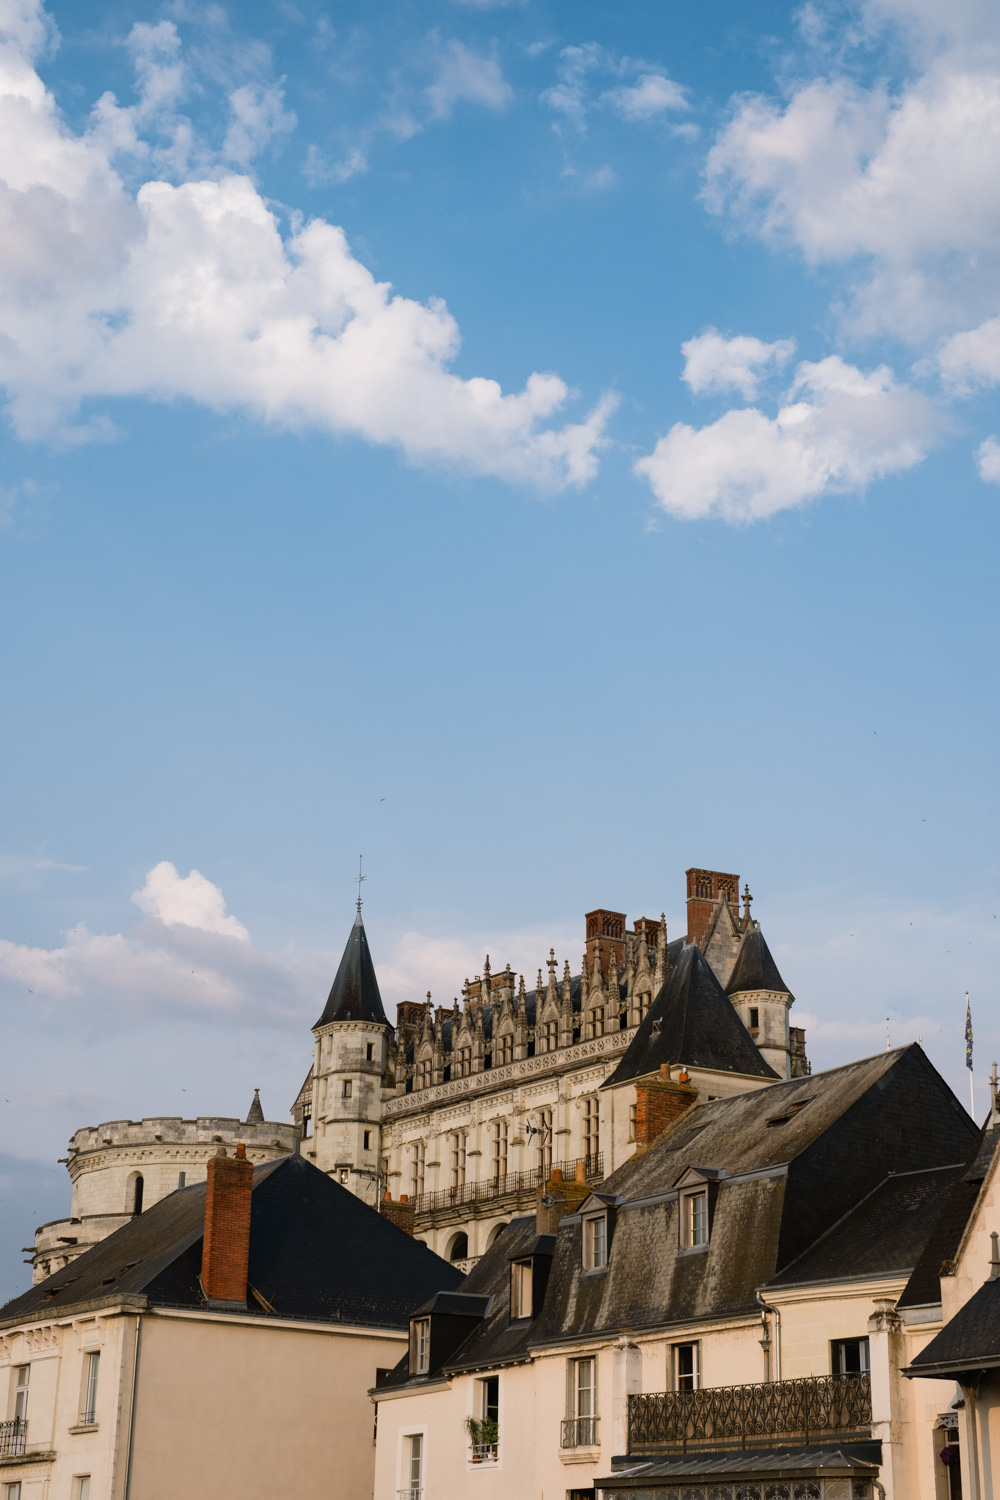 Top of the Château d'Amboise